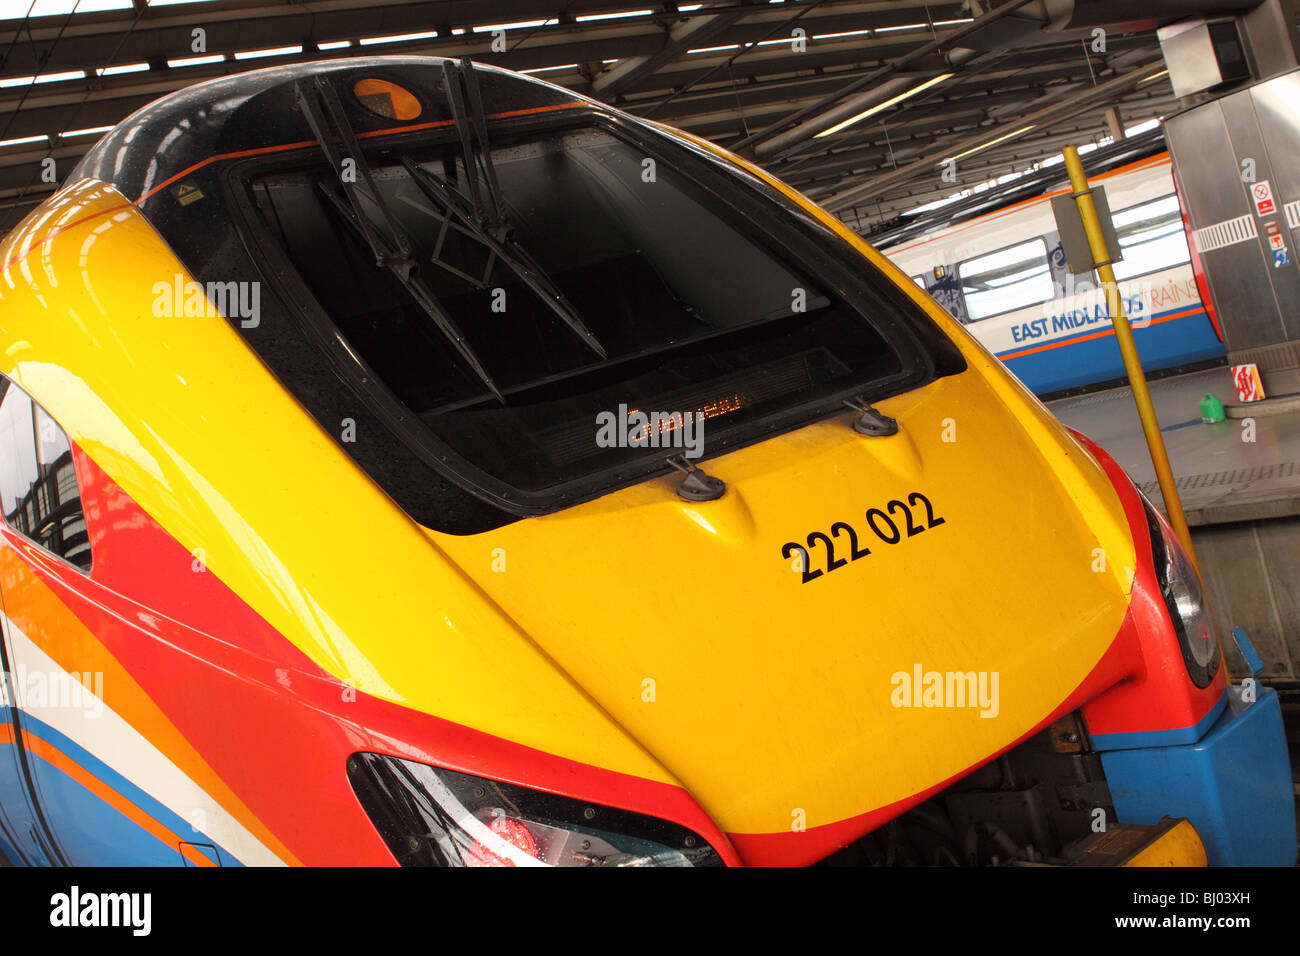 Class 222 locomotive of East Midlands Trains at St Pancras railway station London - Stock Image